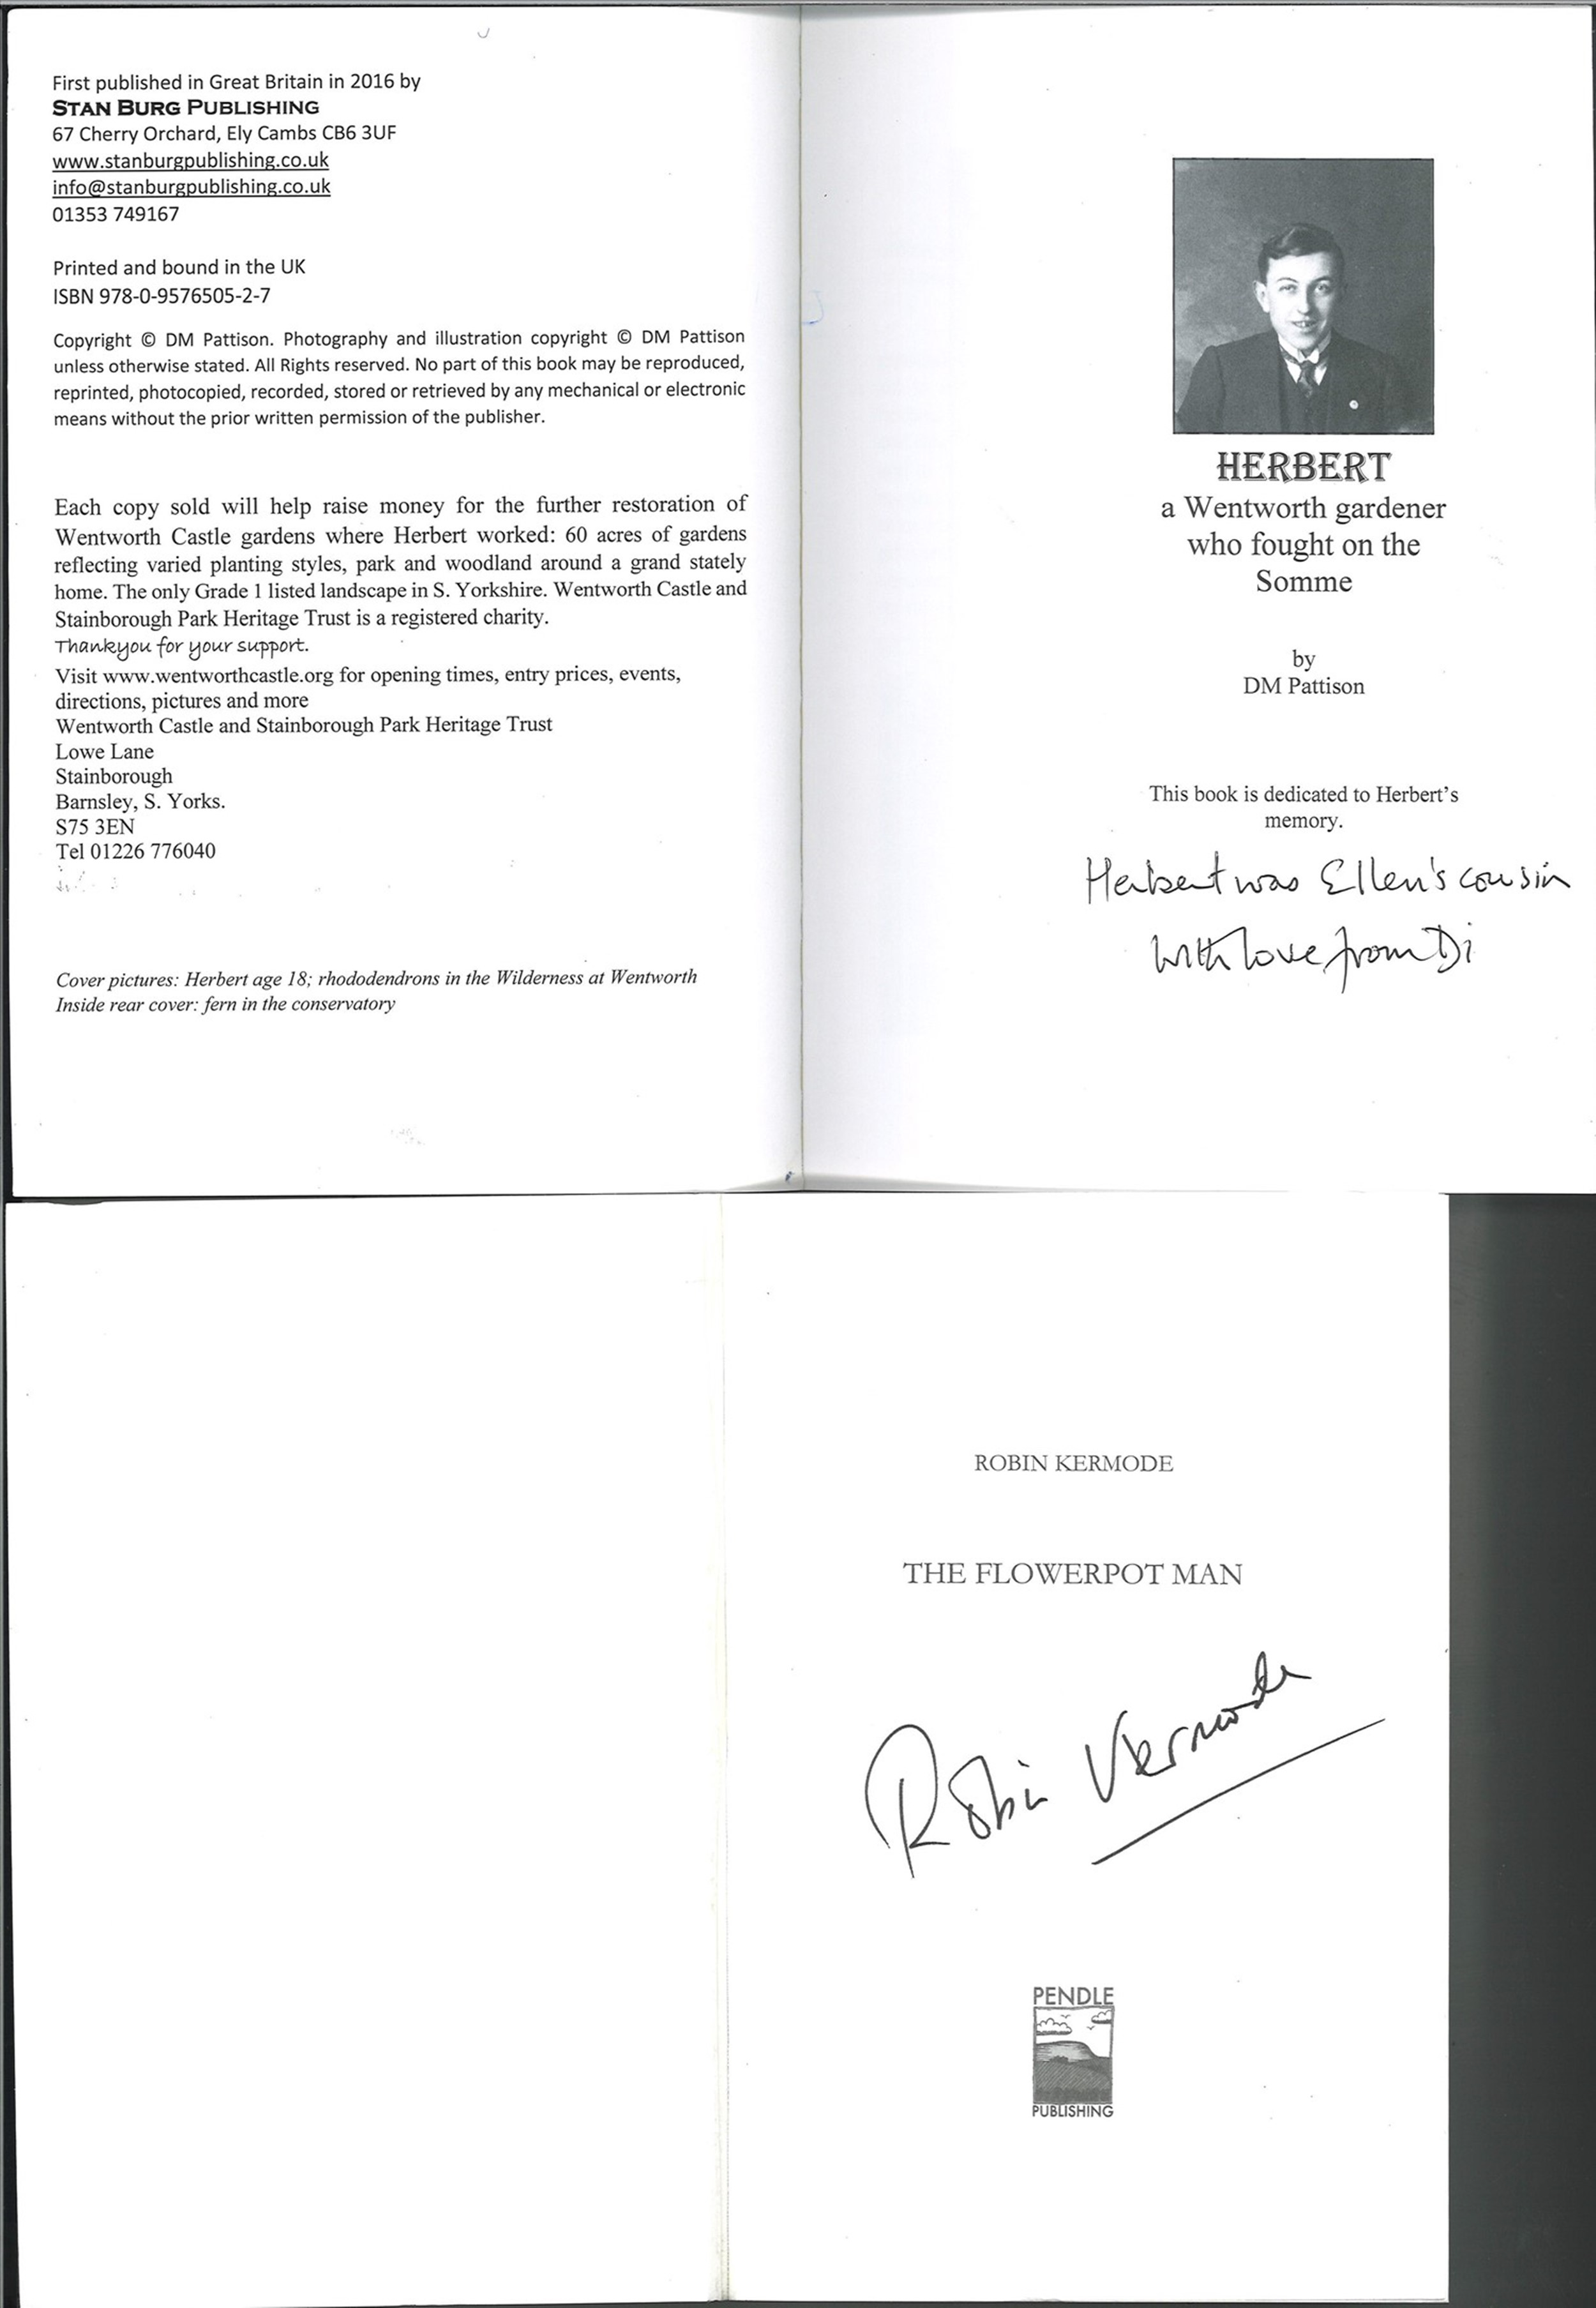 5 Agricultural Books, 4 Signed and 1 Unsigned Hard and Paperback Books, Includes Unsigned - Image 3 of 3